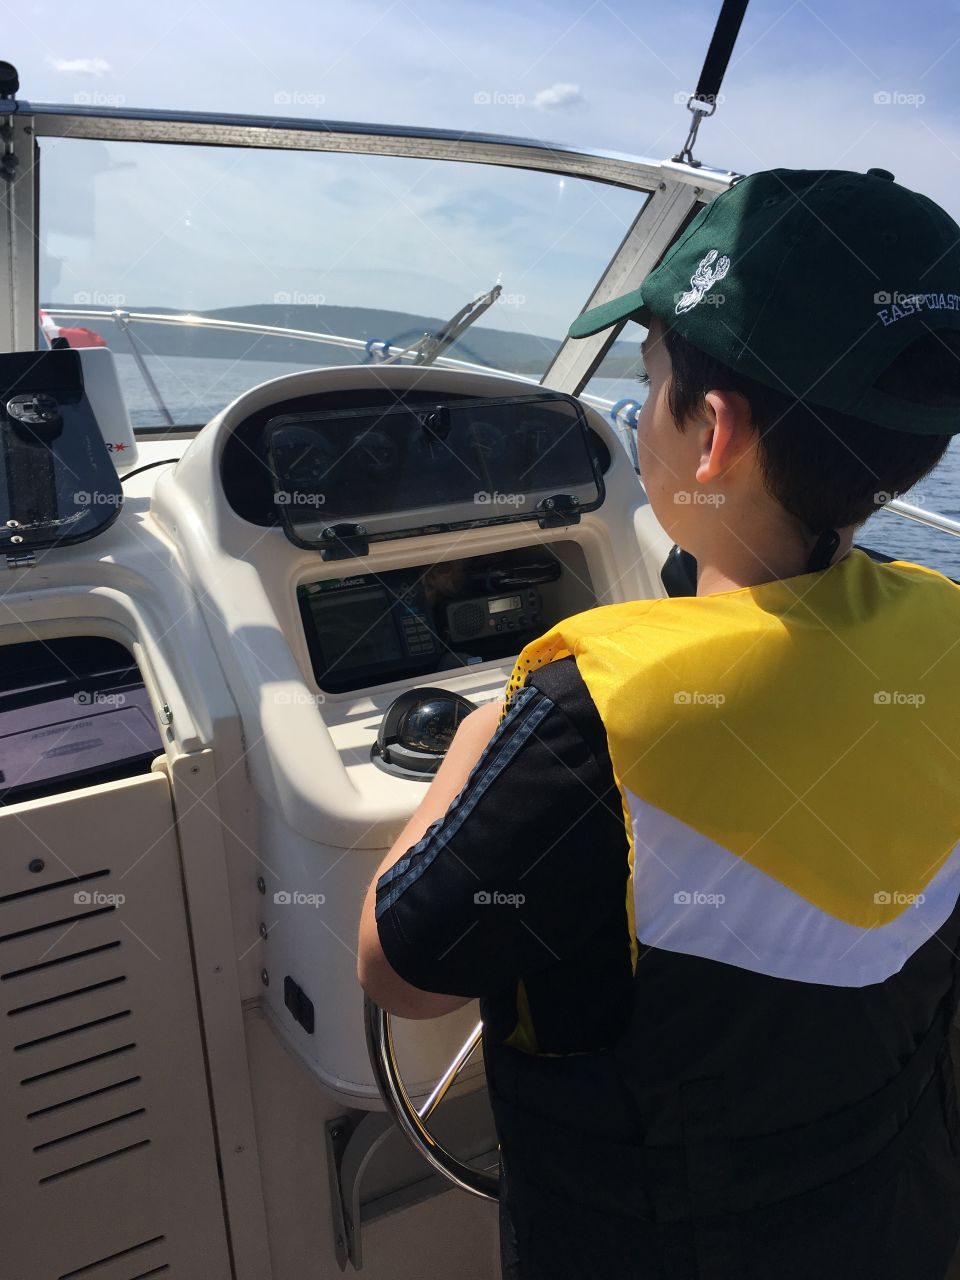 Young boy learning to drive a boat wearing a yellow life jacket and green ball cap.